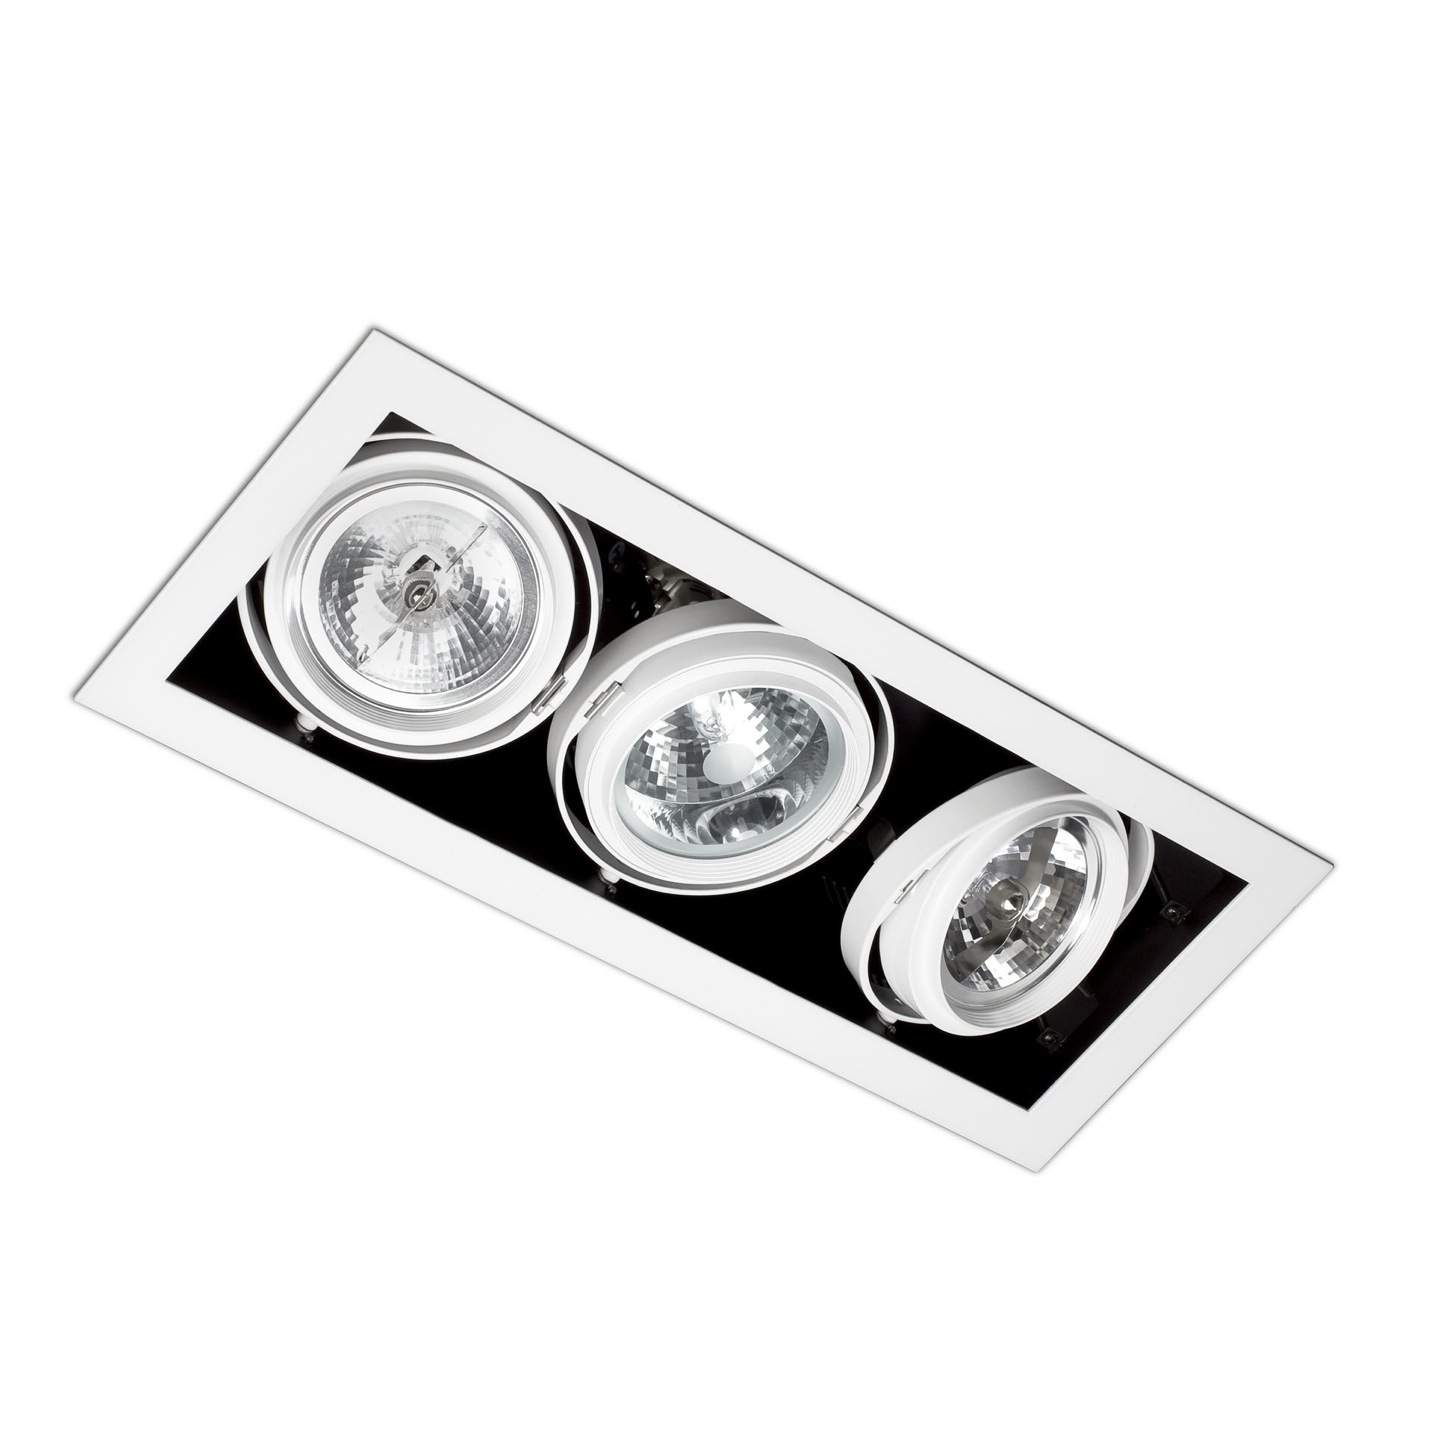 Morris Recessed Ceiling (body without PortaLámpara s) 3xElements Black